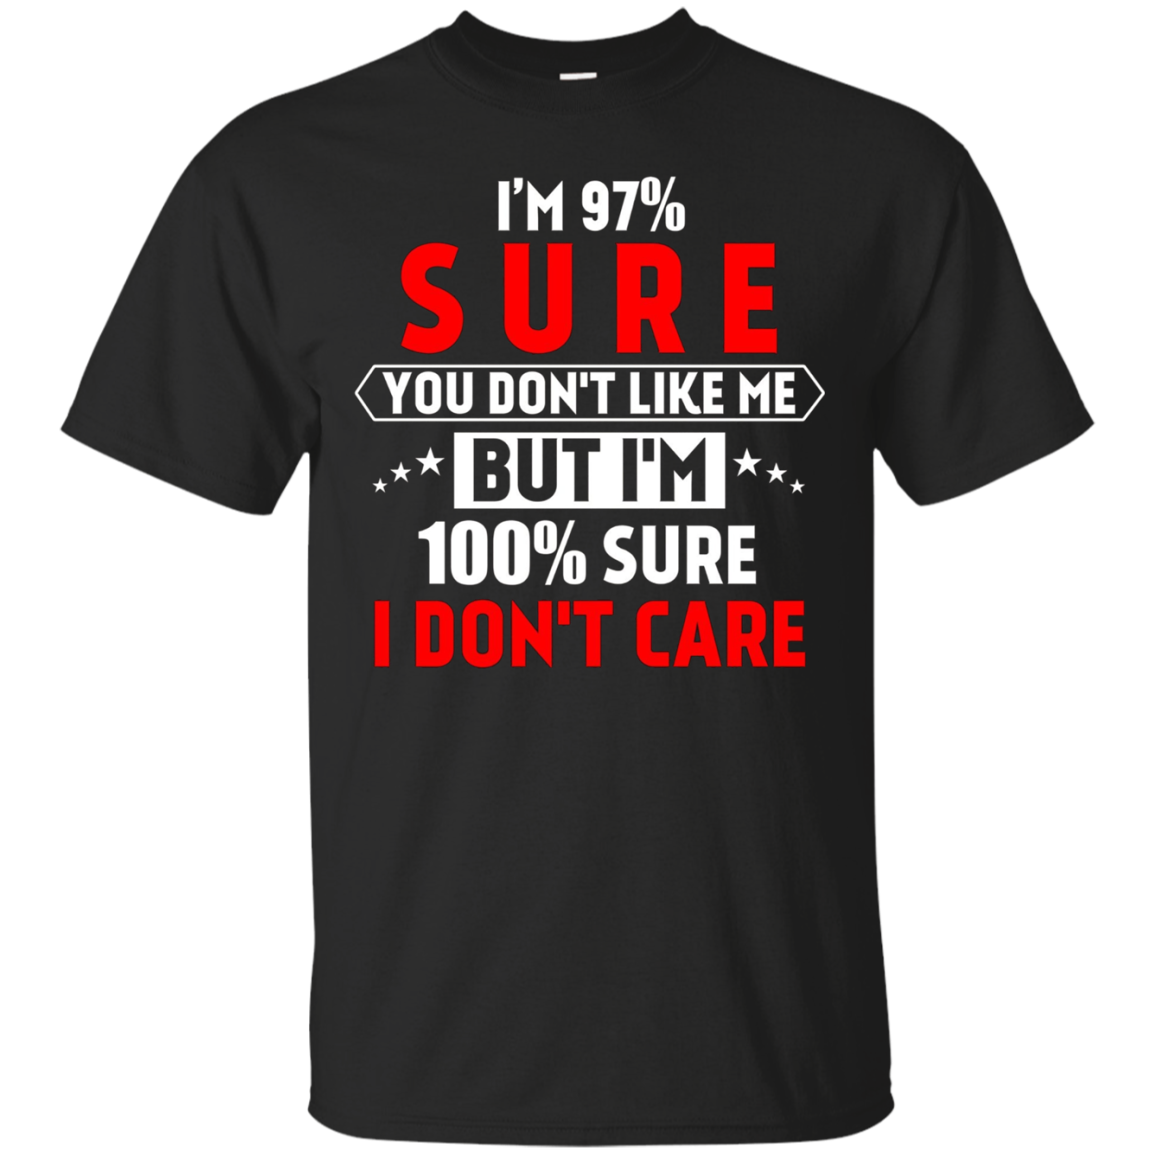 I'm 97% sure you don't like me Shirt Funny Tee for men